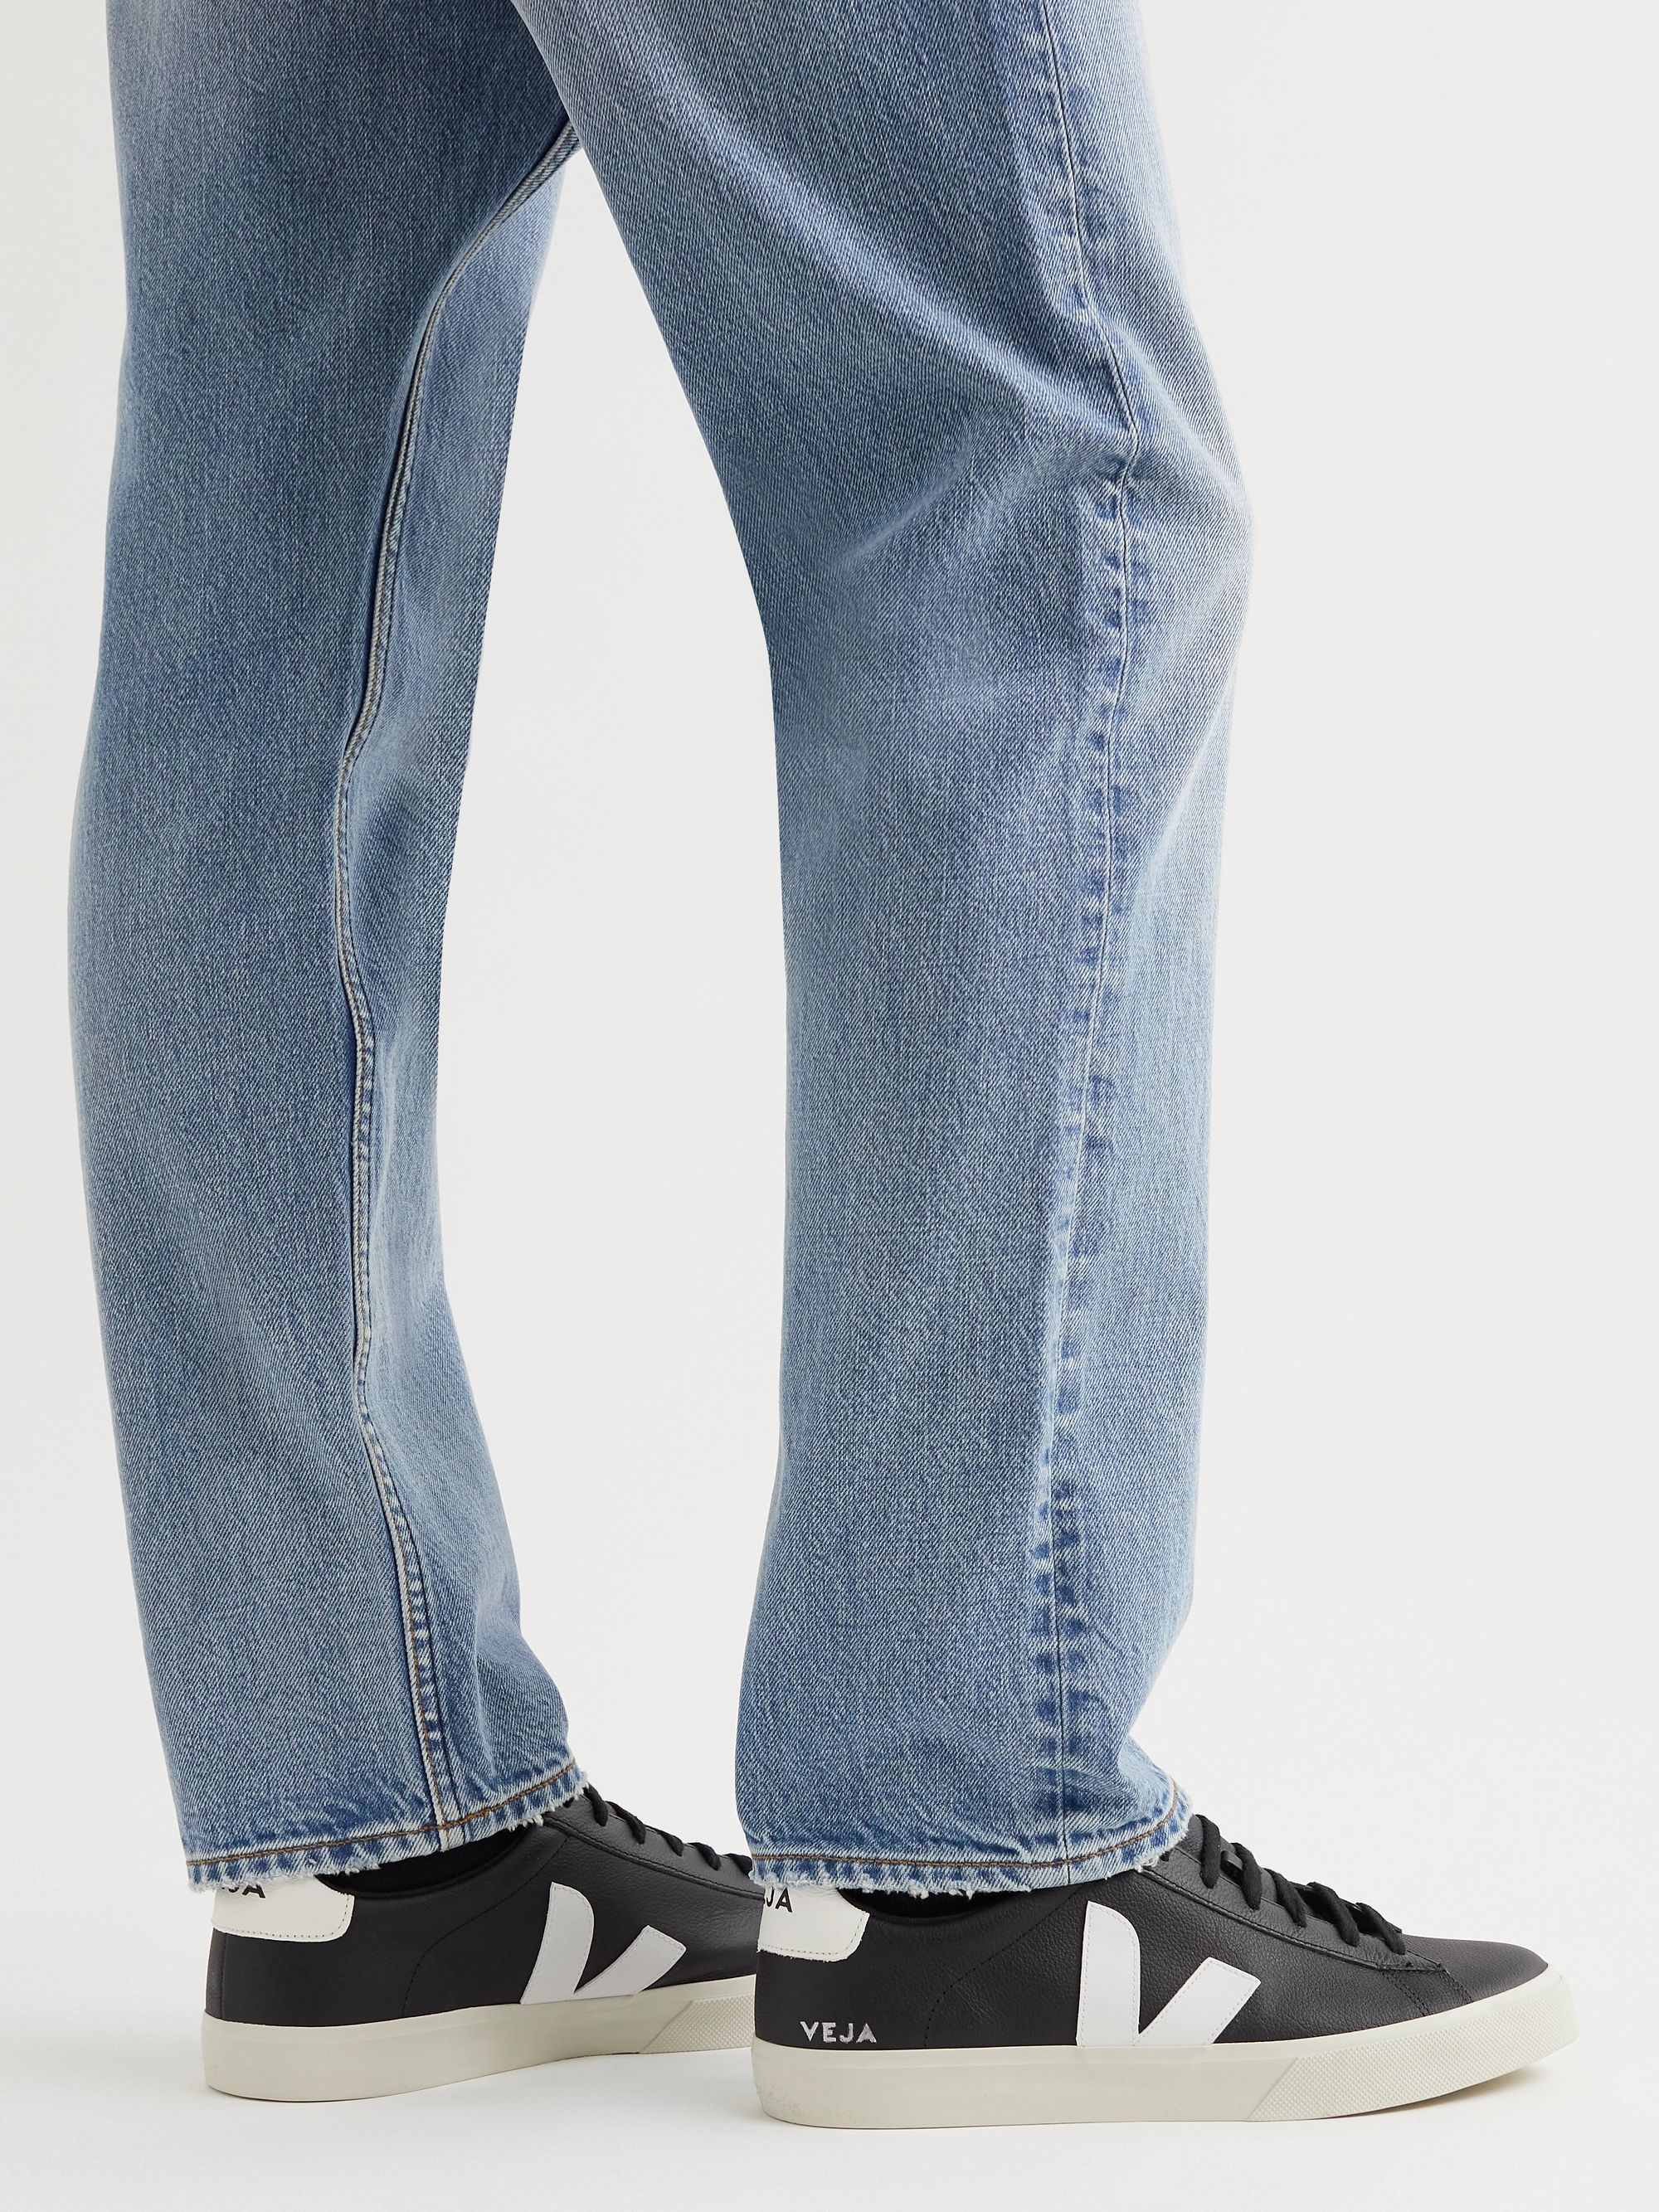 Veja Campo Suede-Trimmed Leather Sneakers